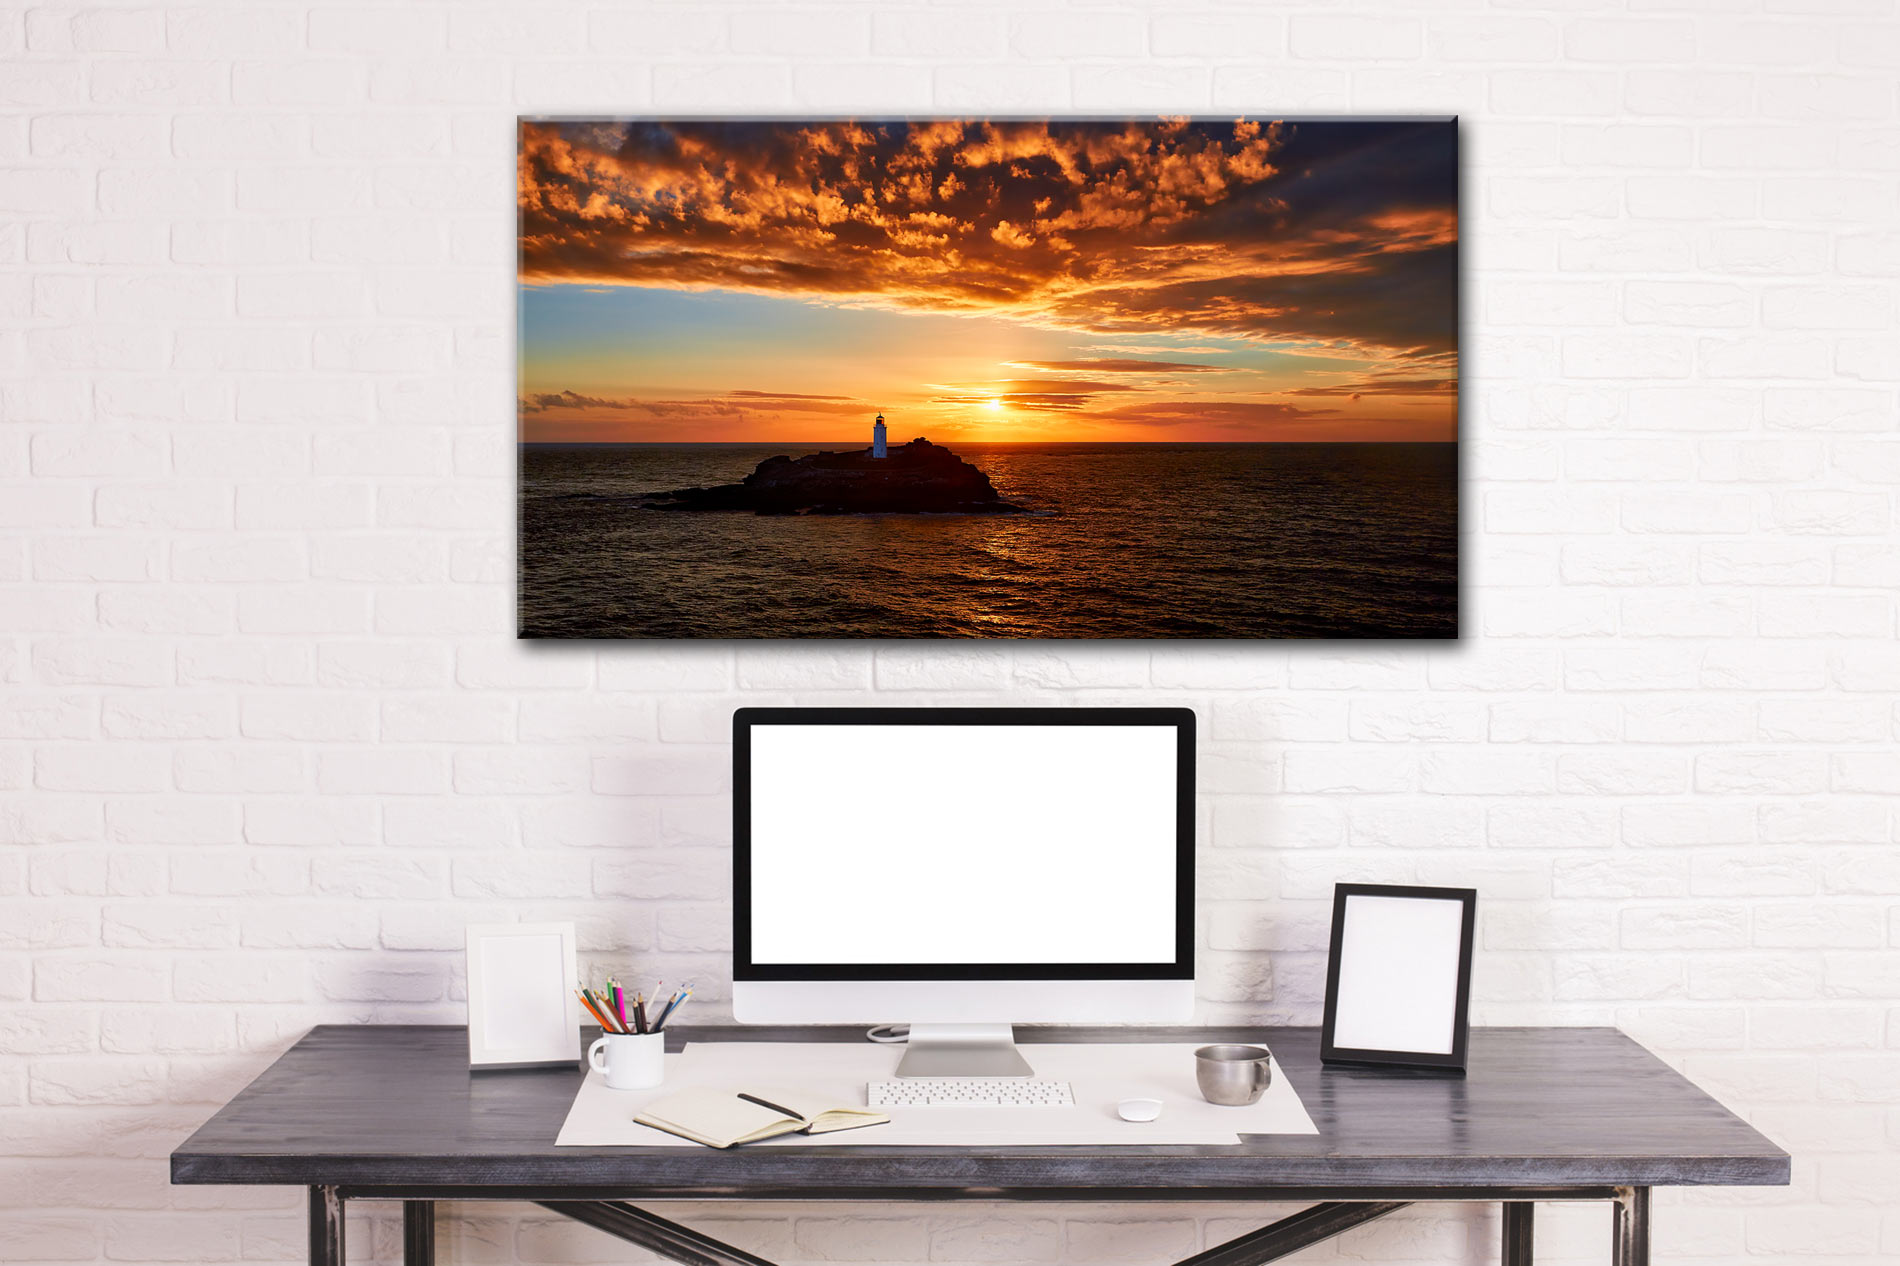 Sunset Over Godrevy Lighthouse - Cornwall Canvas on Wall